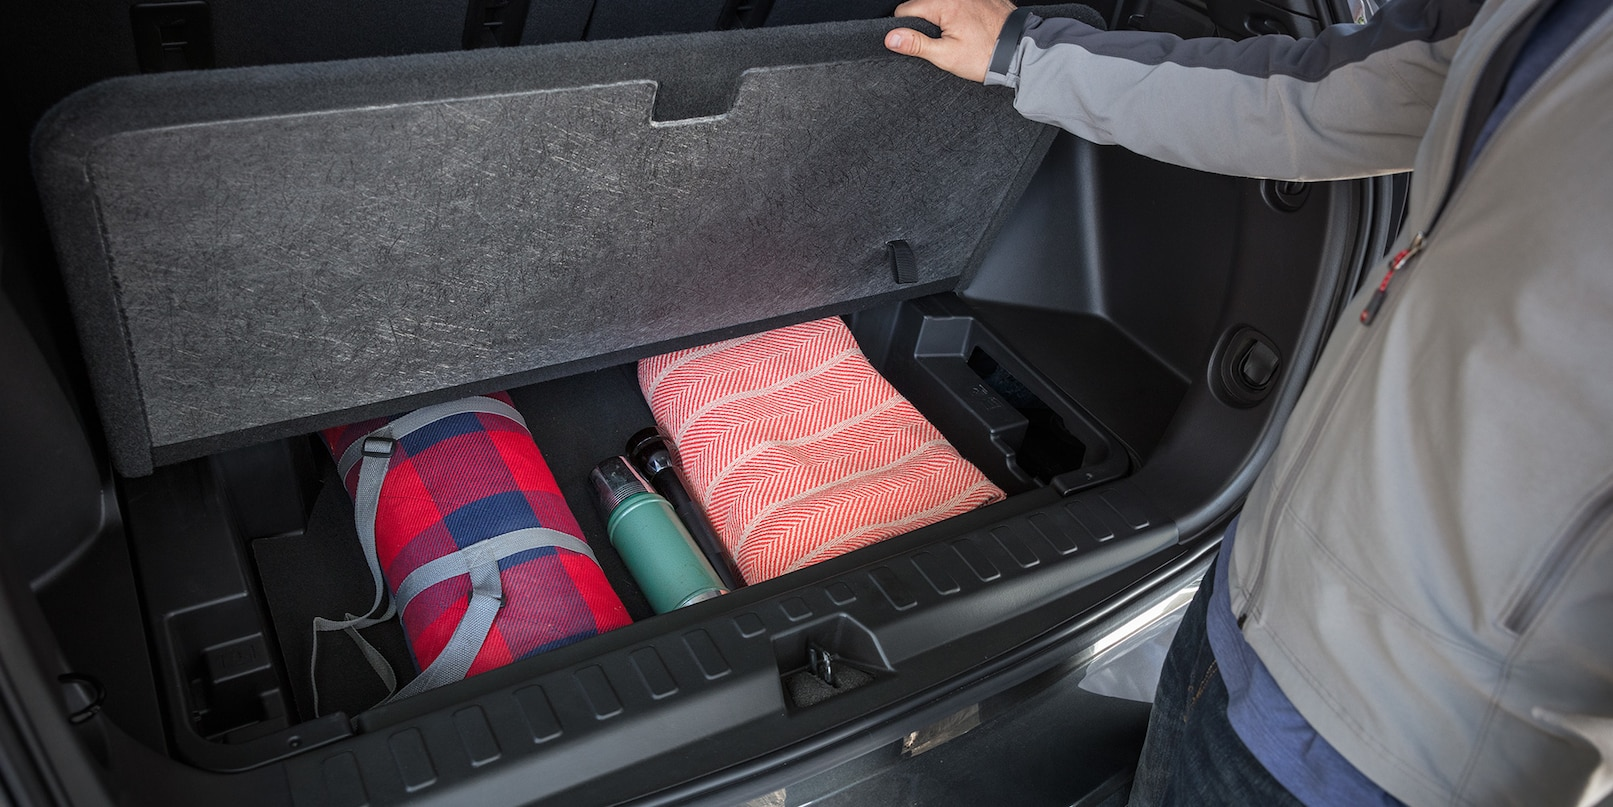 Storage in the 2019 Equinox